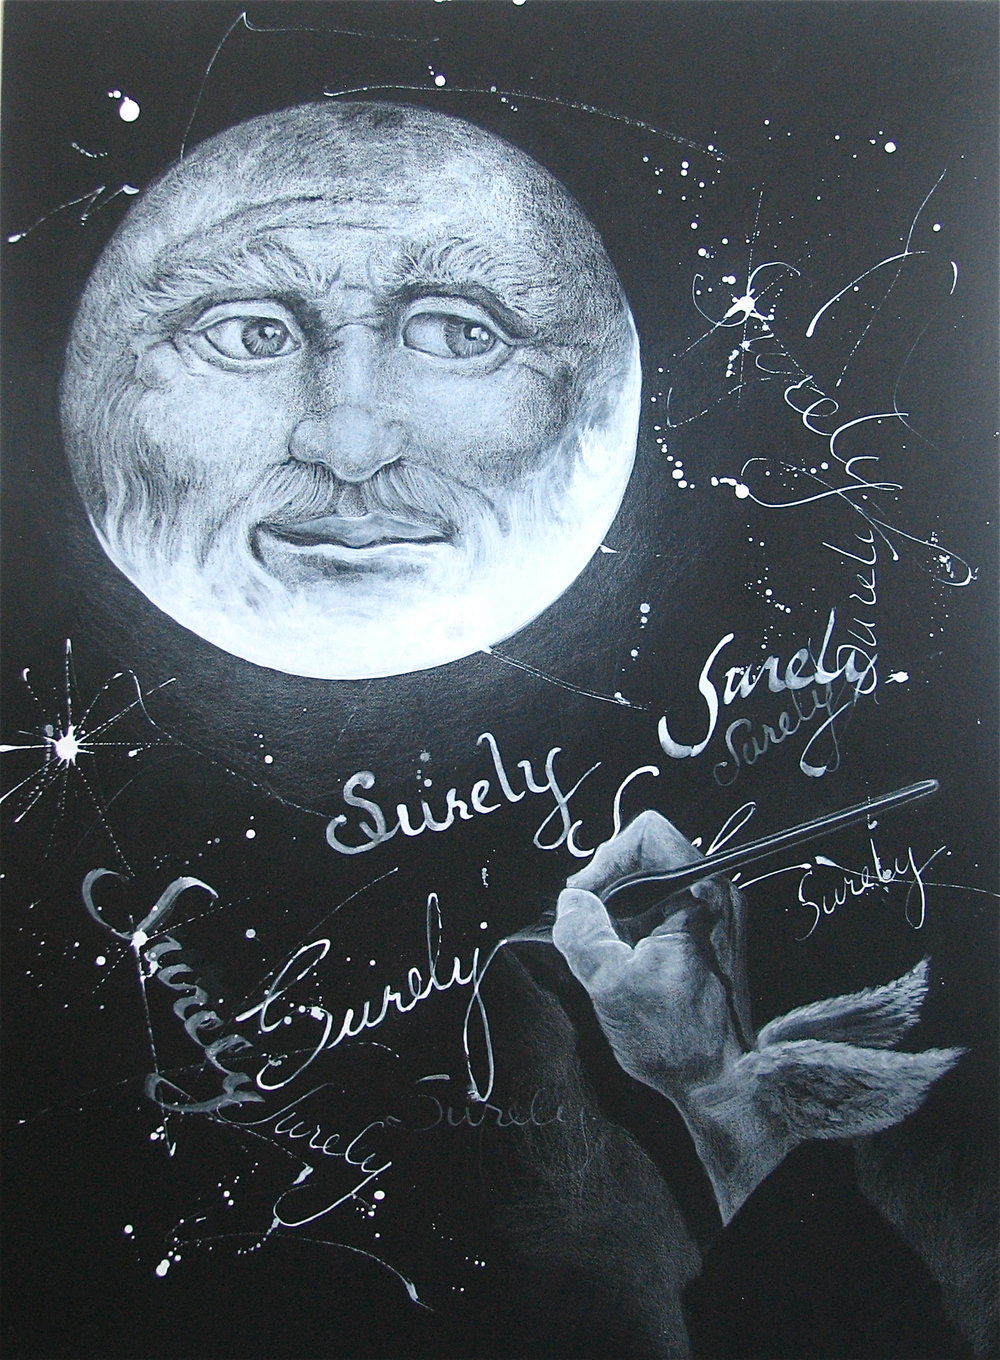 The Moon, Inspired by the band Black Dub, :Surely""